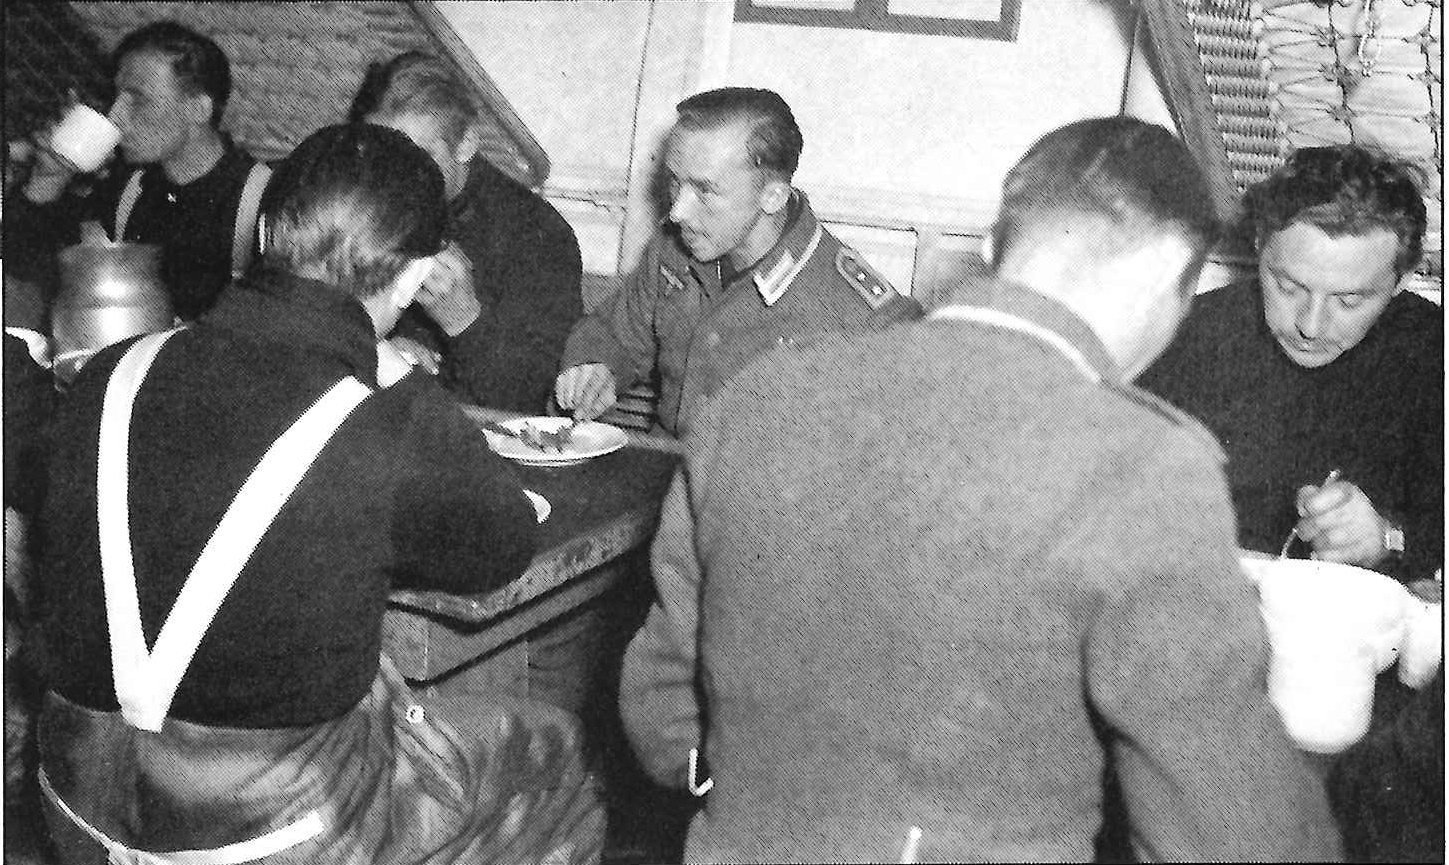 5. Captured Nazi weather station crewmembers under armed guard on board the Northland. (U.S. Coast Guard)